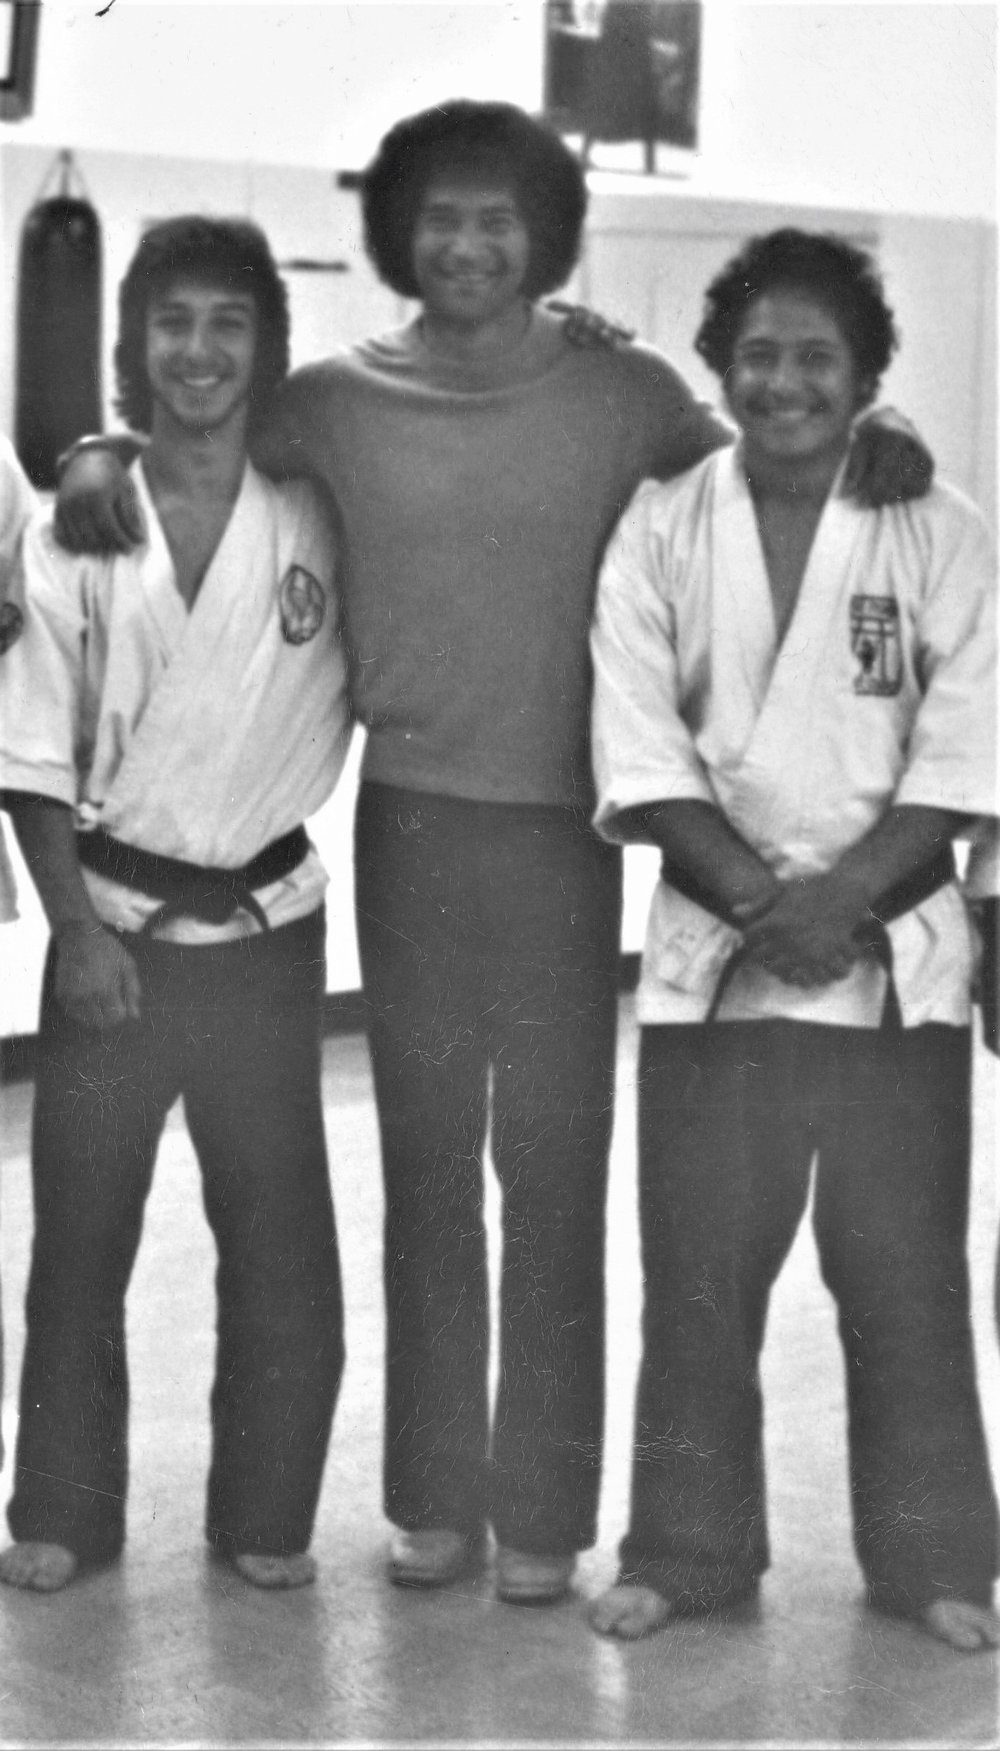 Sensei Ty with Mike Stone and Steve Fisher after a workout